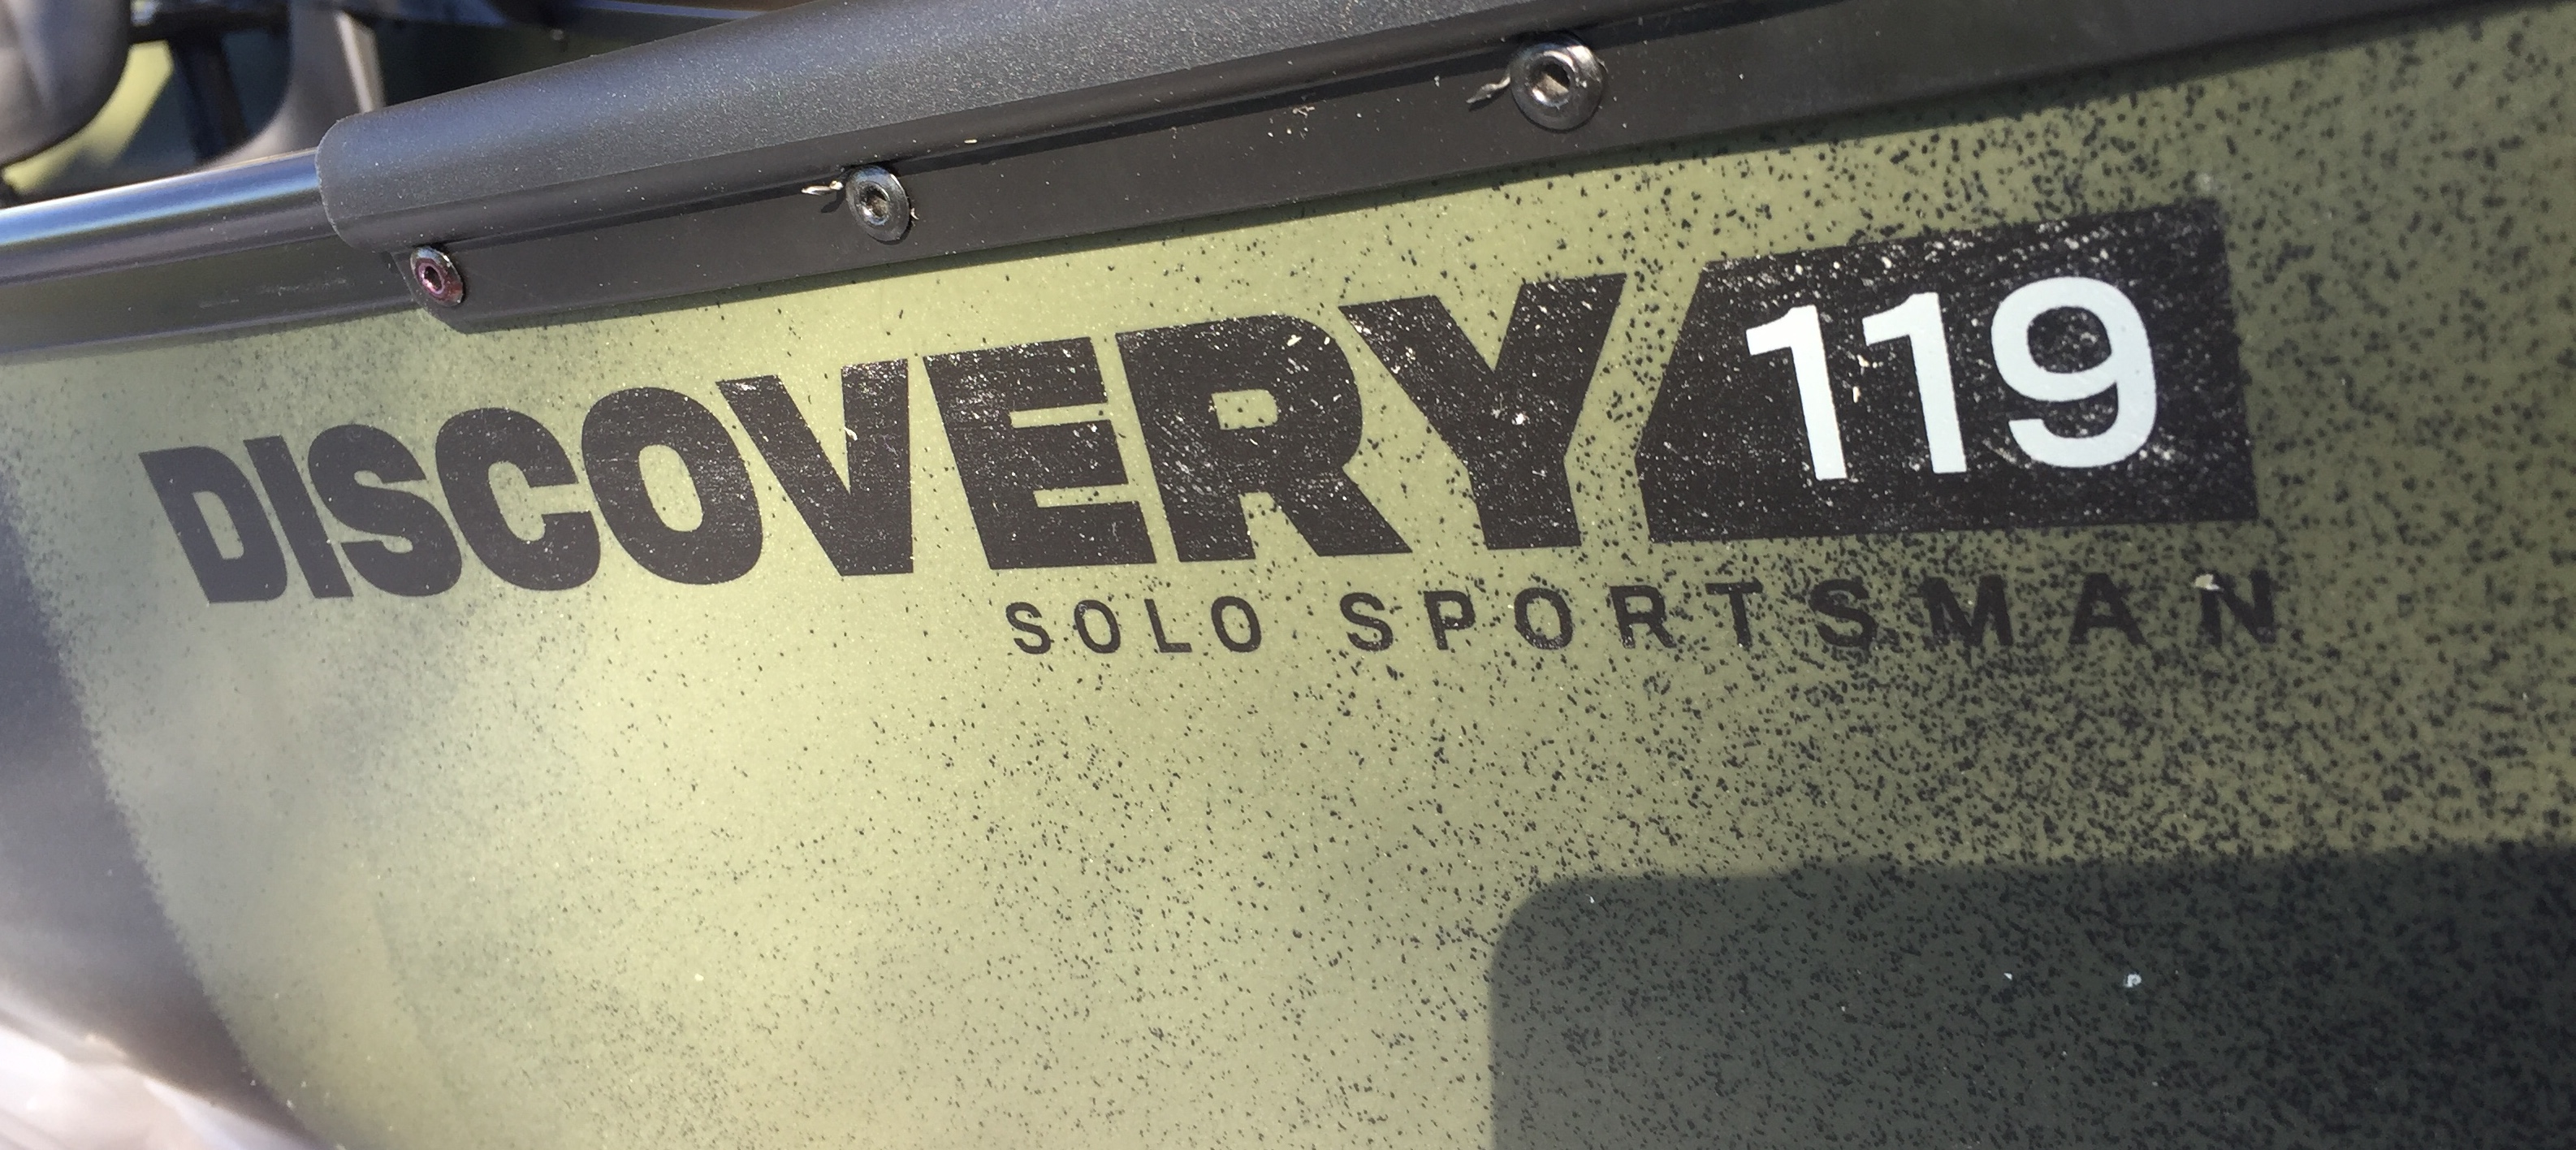 First Look: Discovery 119 Solo Sportsman – Gary Garth's